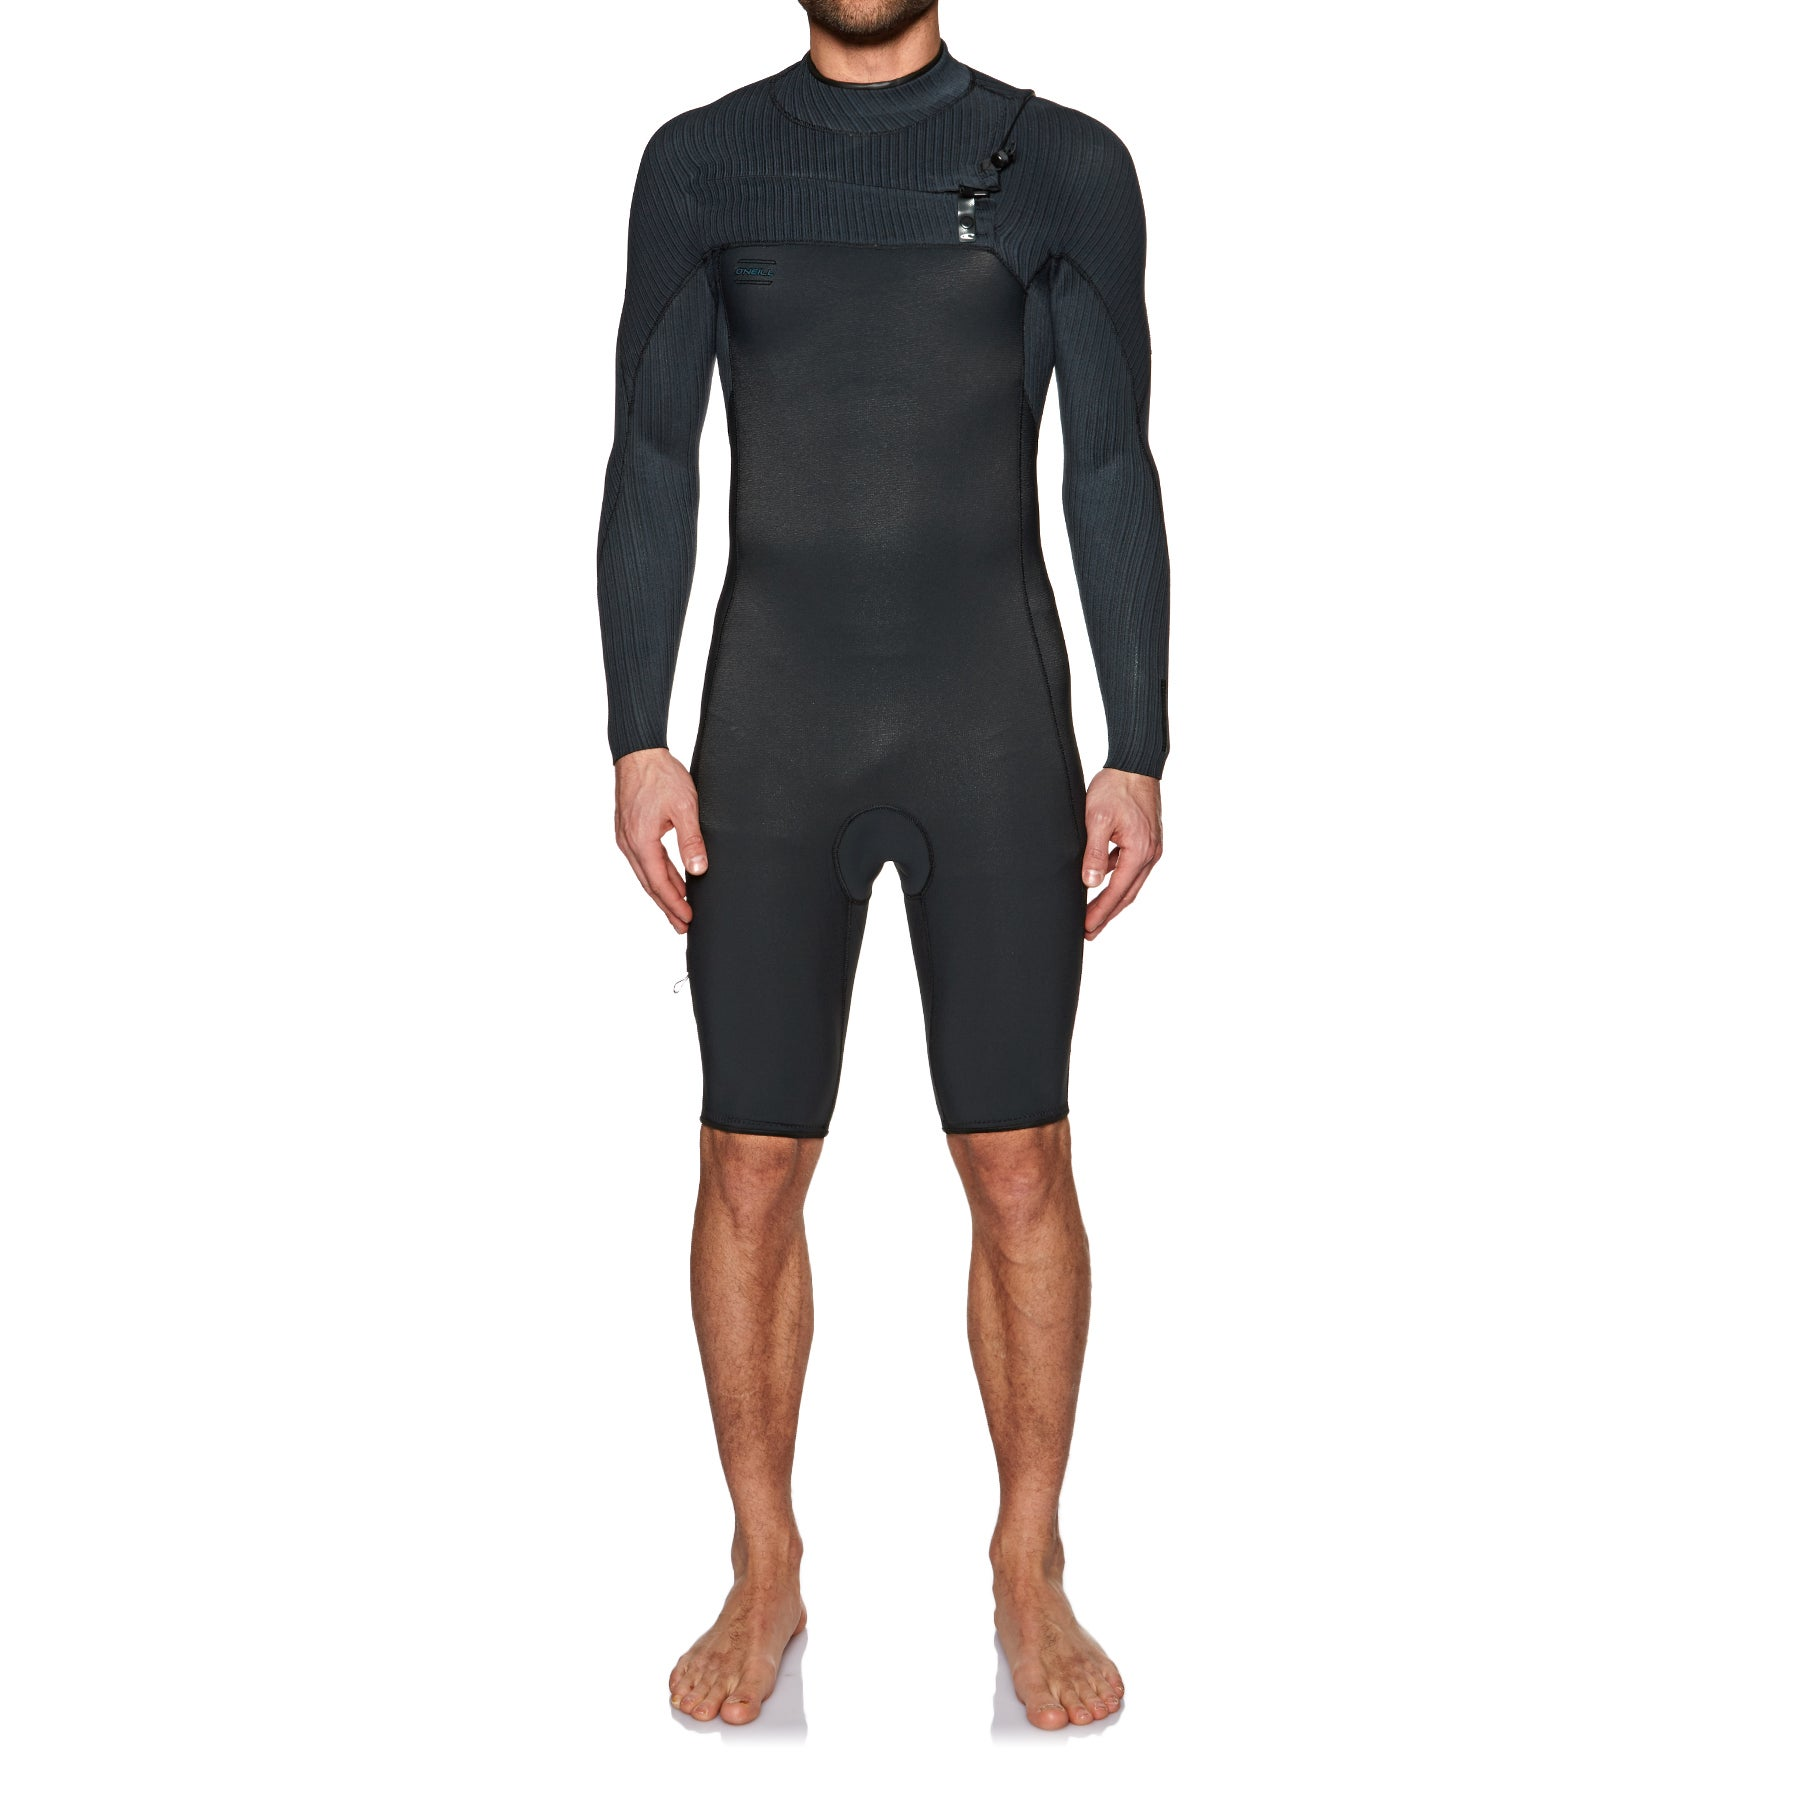 O Neill Hyperfreak 2mm Chest Zip Long Sleeve Shorty Wetsuit